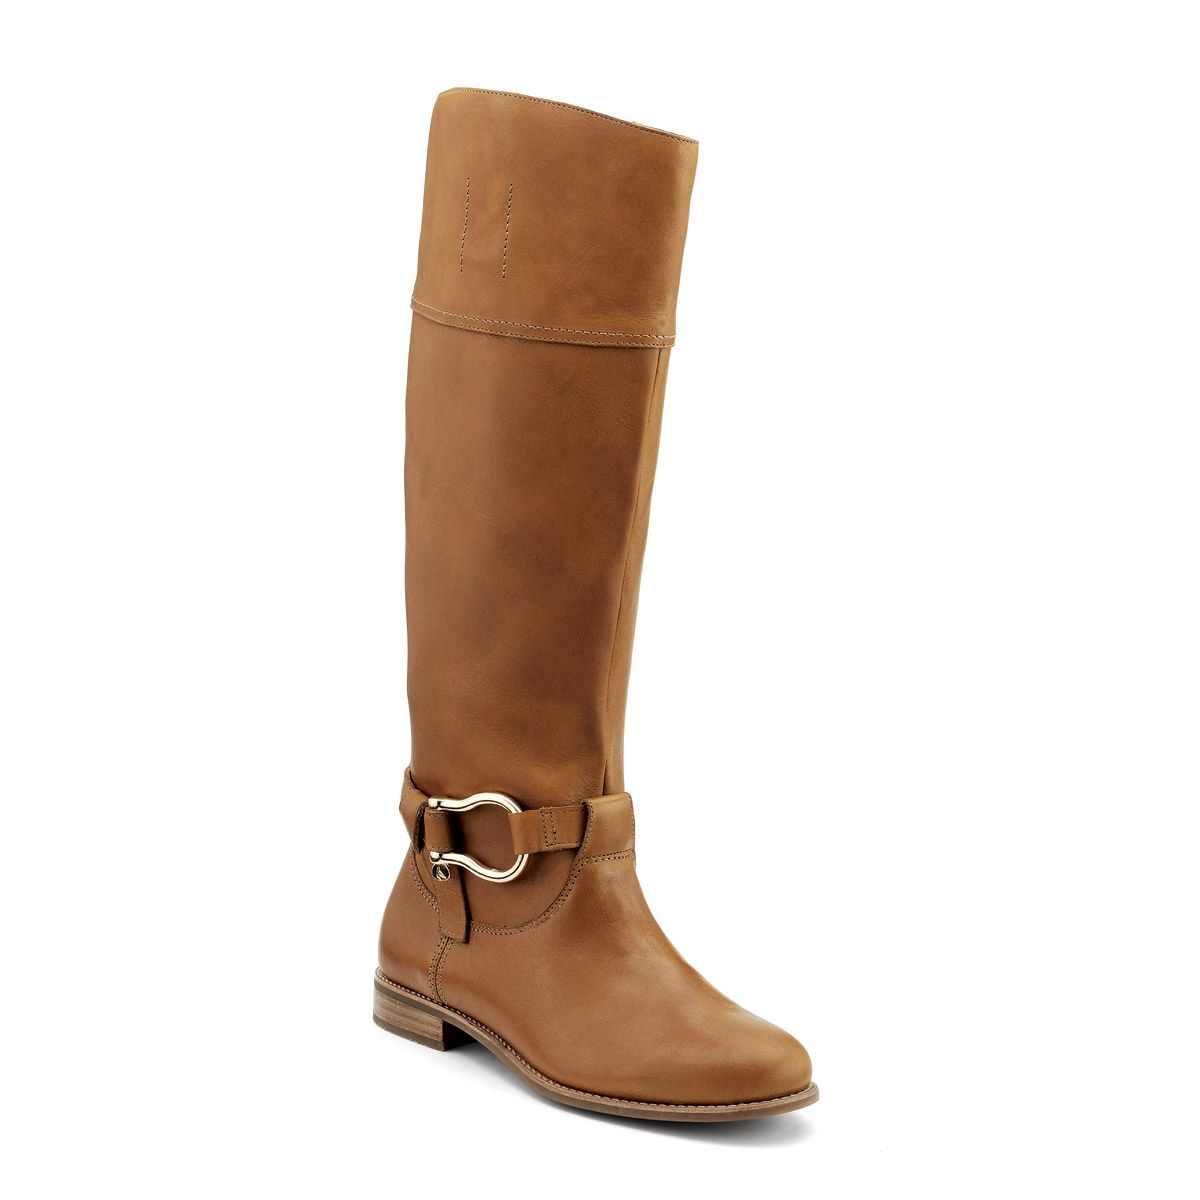 Sperry Top-Sider Women's Sable Boot from Redix... ON SALE!